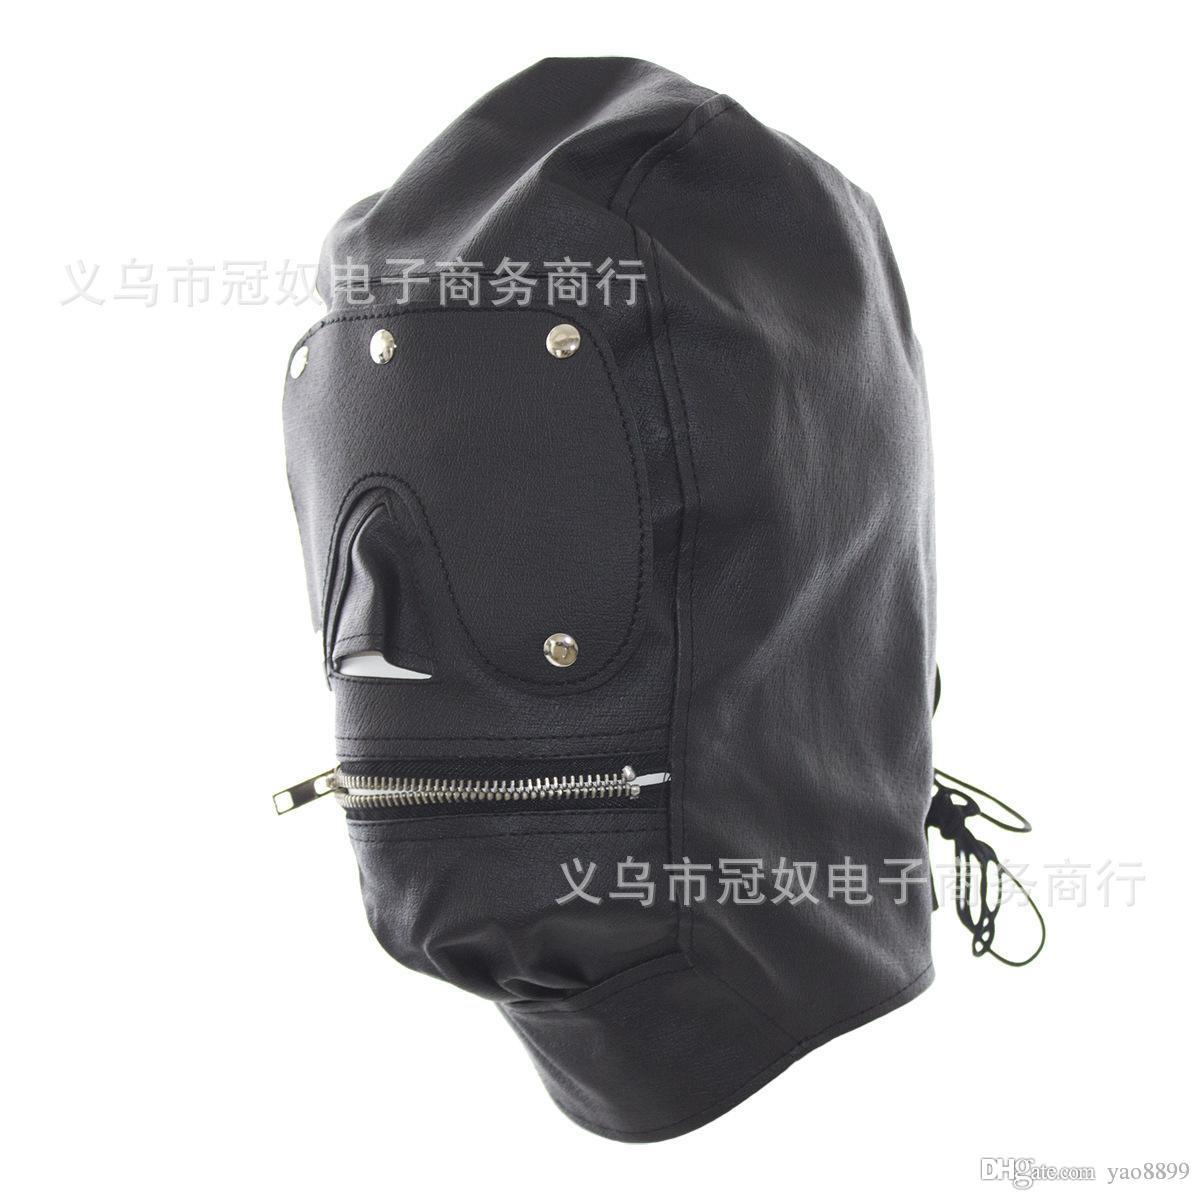 Bdsm sex toys choking stifle suffocate asphyxia game Sex Head Face Mask Blindness Hoods Bondage BDSM Products